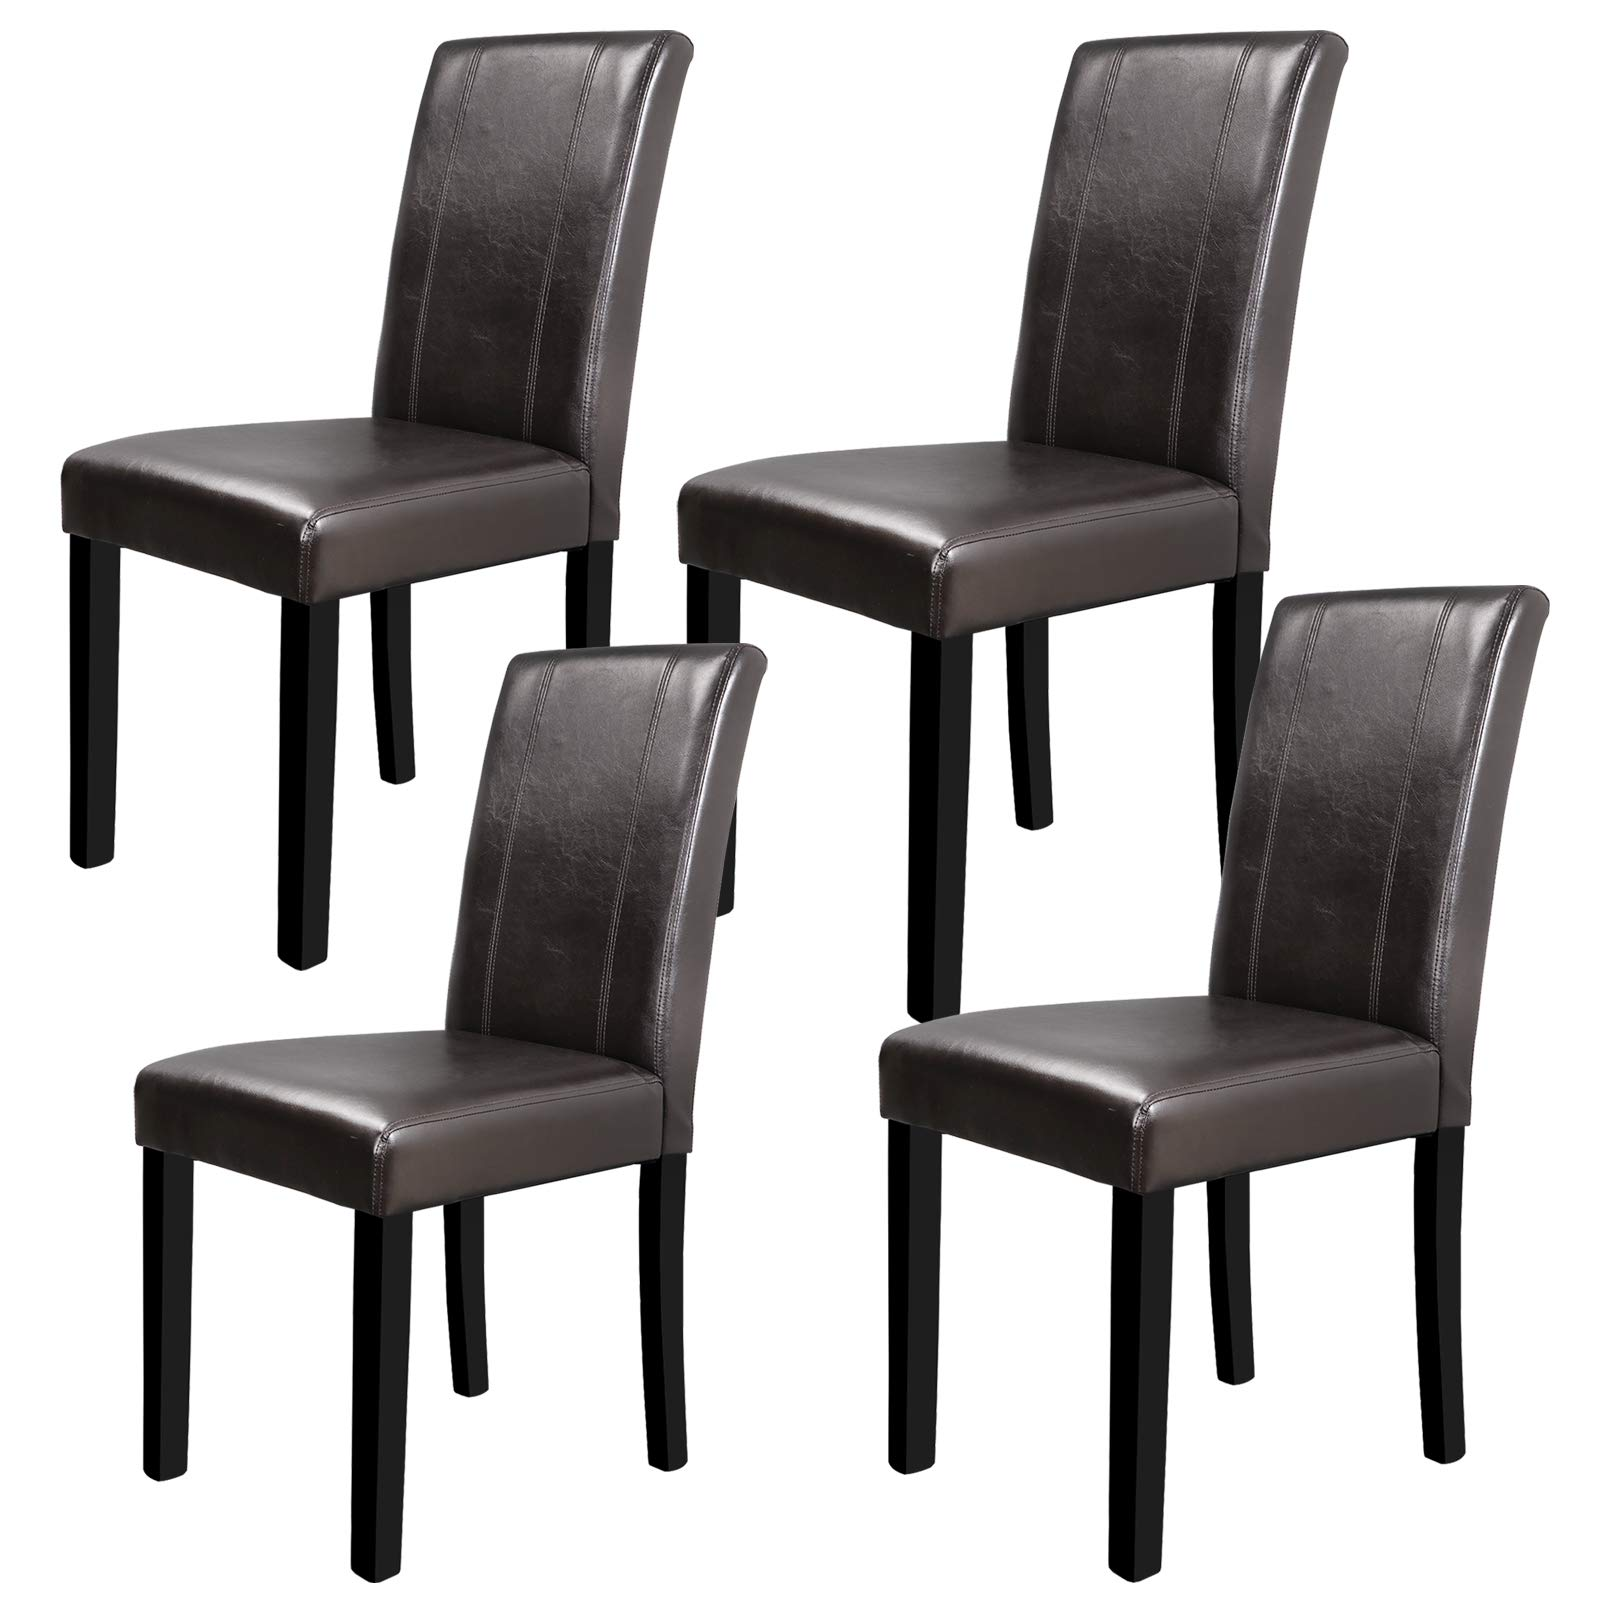 SUPER DEAL Solid Wood Leatherette Padded Parson Dining Chair, Waterproof & Oilproof Stretch Kitchen Dining Room Chairs, Espresso (4) by SUPER DEAL